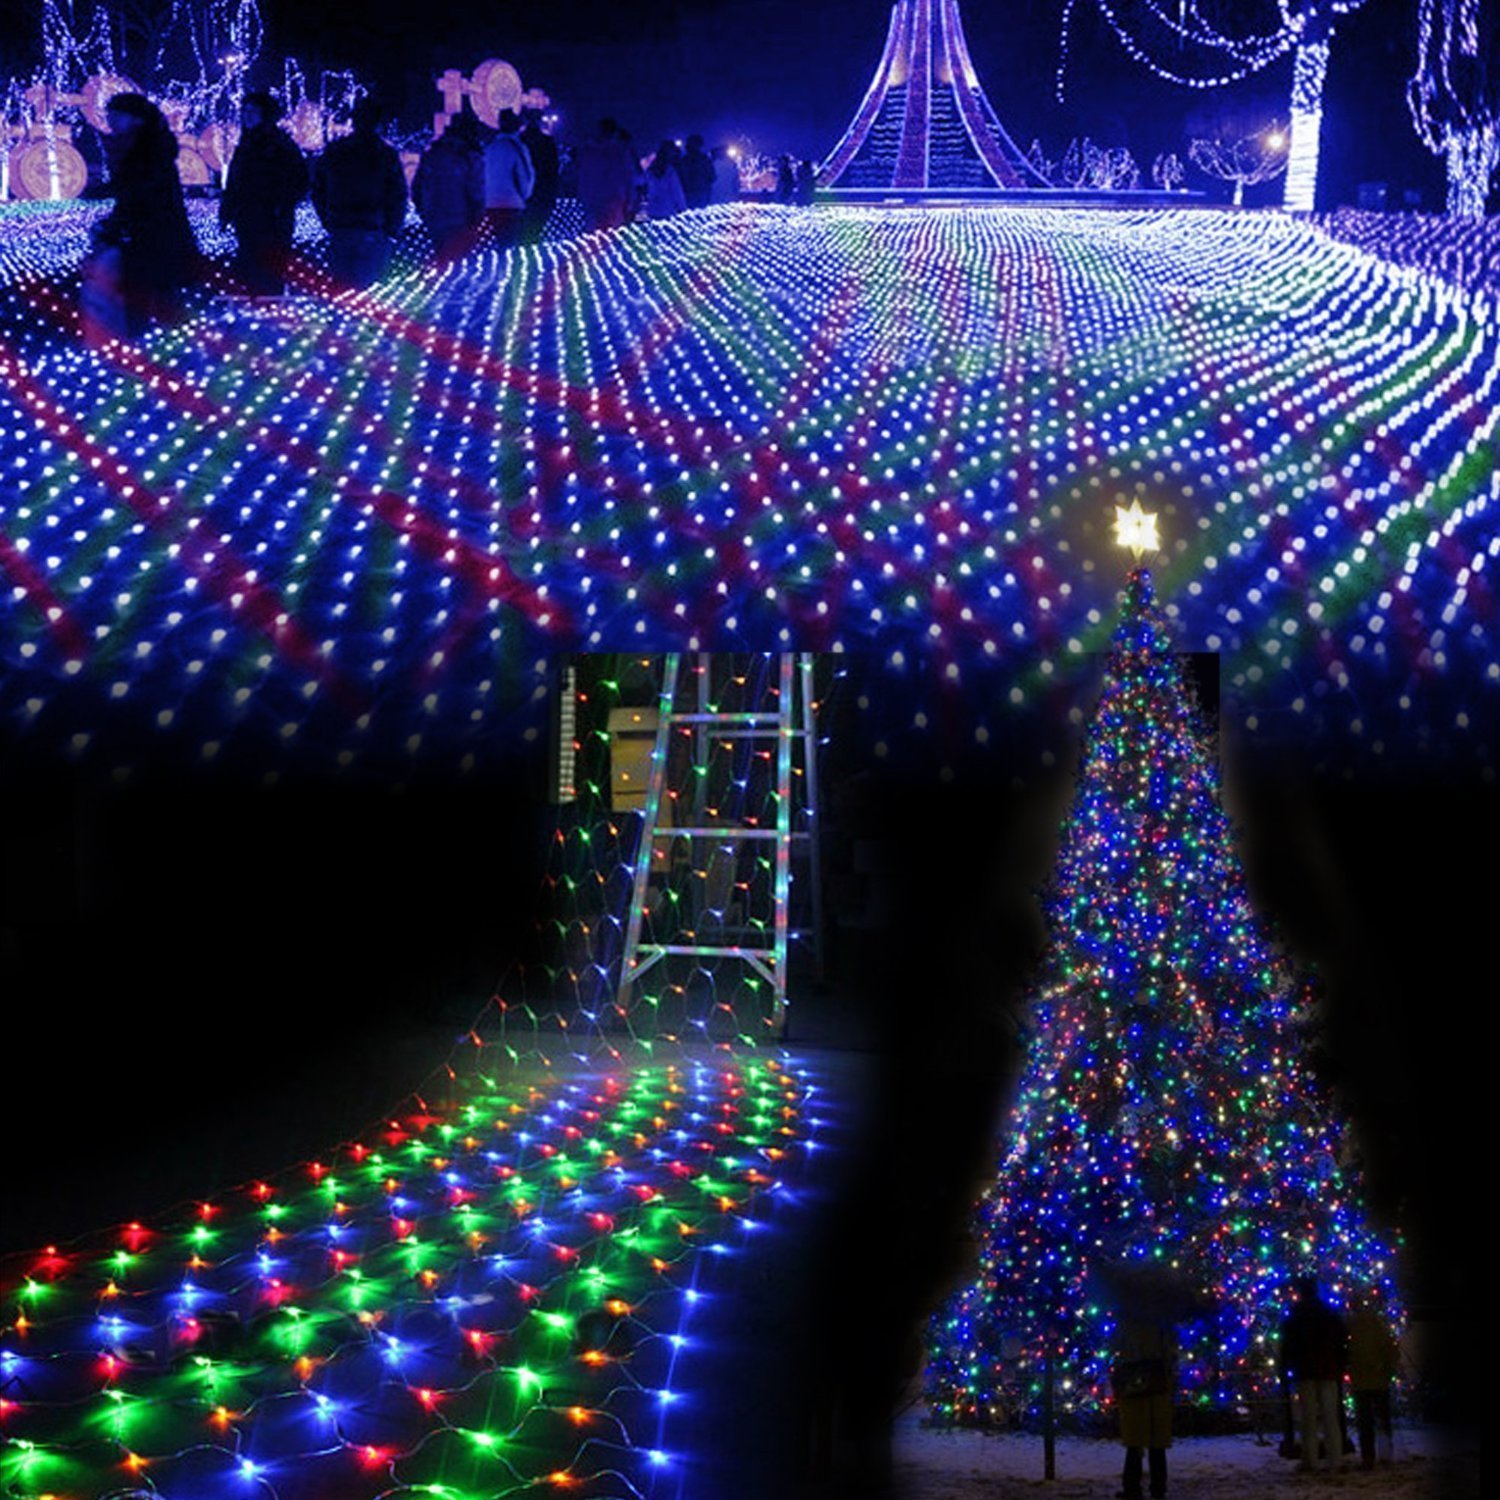 GBB 110V 96LED Mesh Net String Party Lights For Christmas & Halloween Wedding decoration. 8 different modes With Tail Plug (Multicolor 1.5m x 1.5m/4.9ft x 4.9ft) Xmas Sale ! Shop now for best price of season!!!